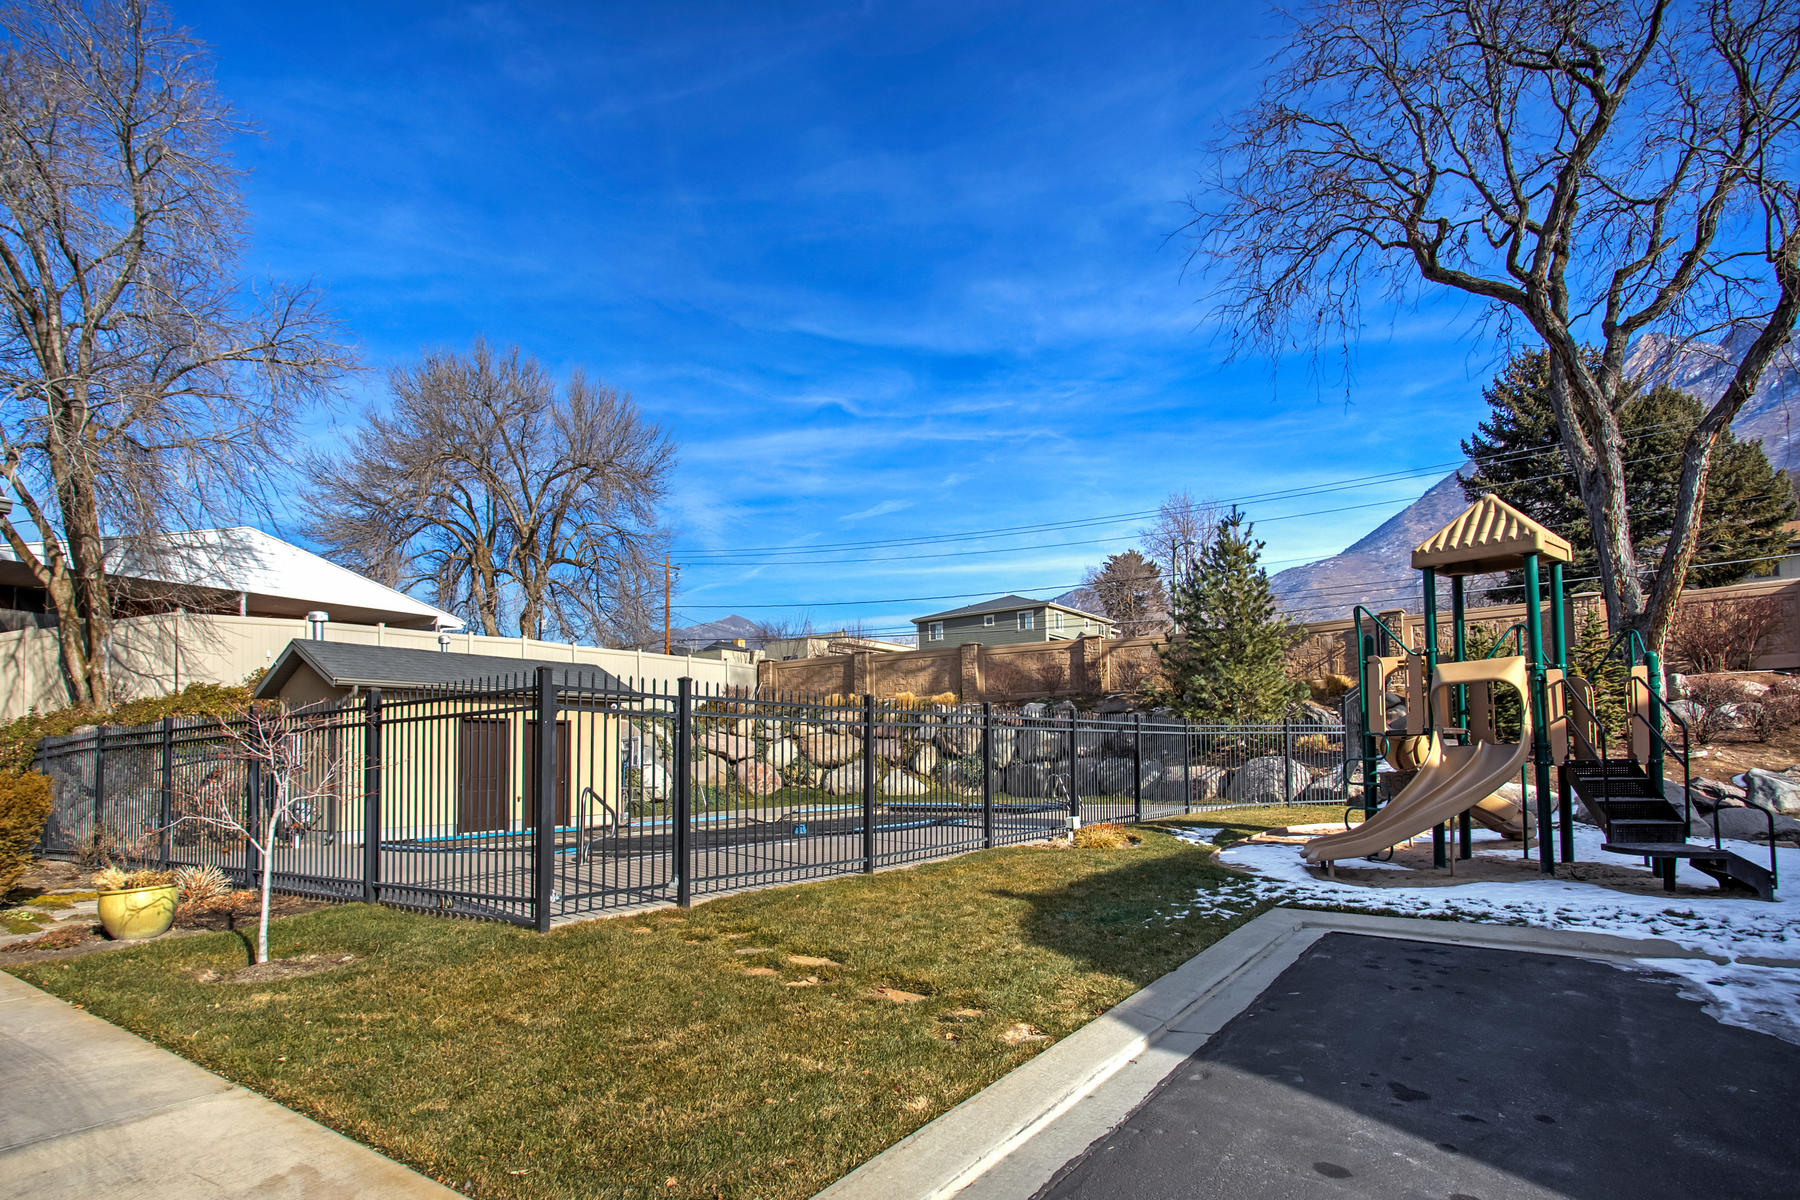 Additional photo for property listing at 5000 Sq Foot Beauty in Holladay 4949 S Holladay Pines Ct Holladay, Utah 84117 United States